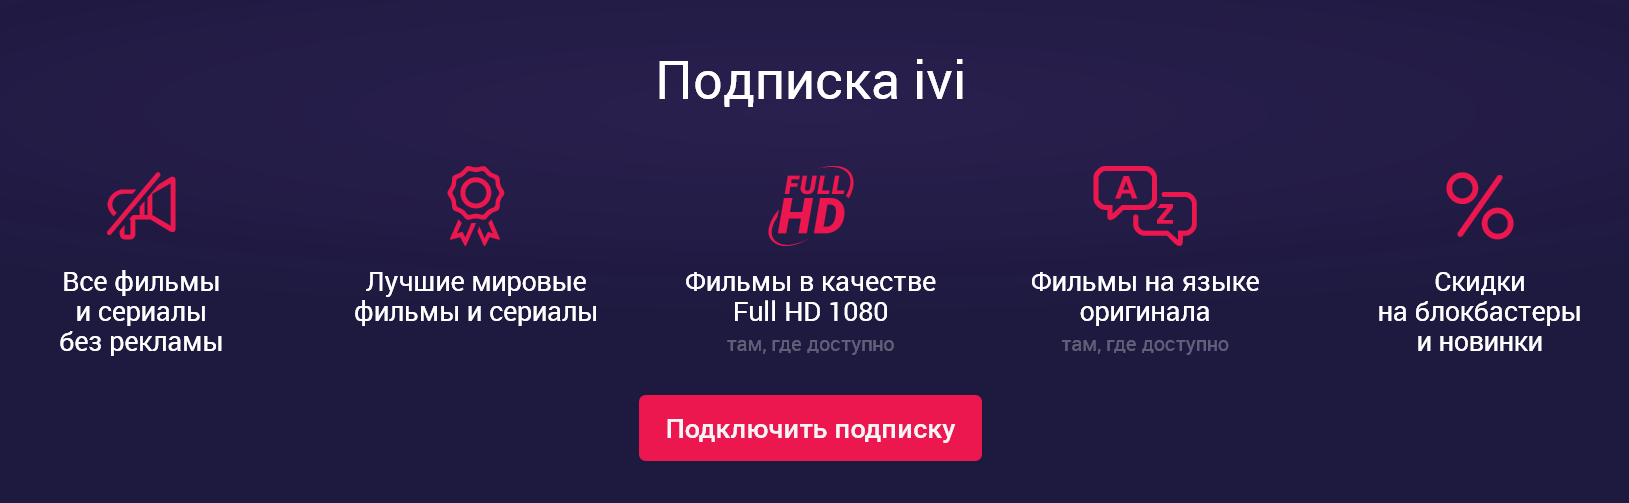 ACCOUNT (NEW!✅) IVI subscription until 27.11.2019